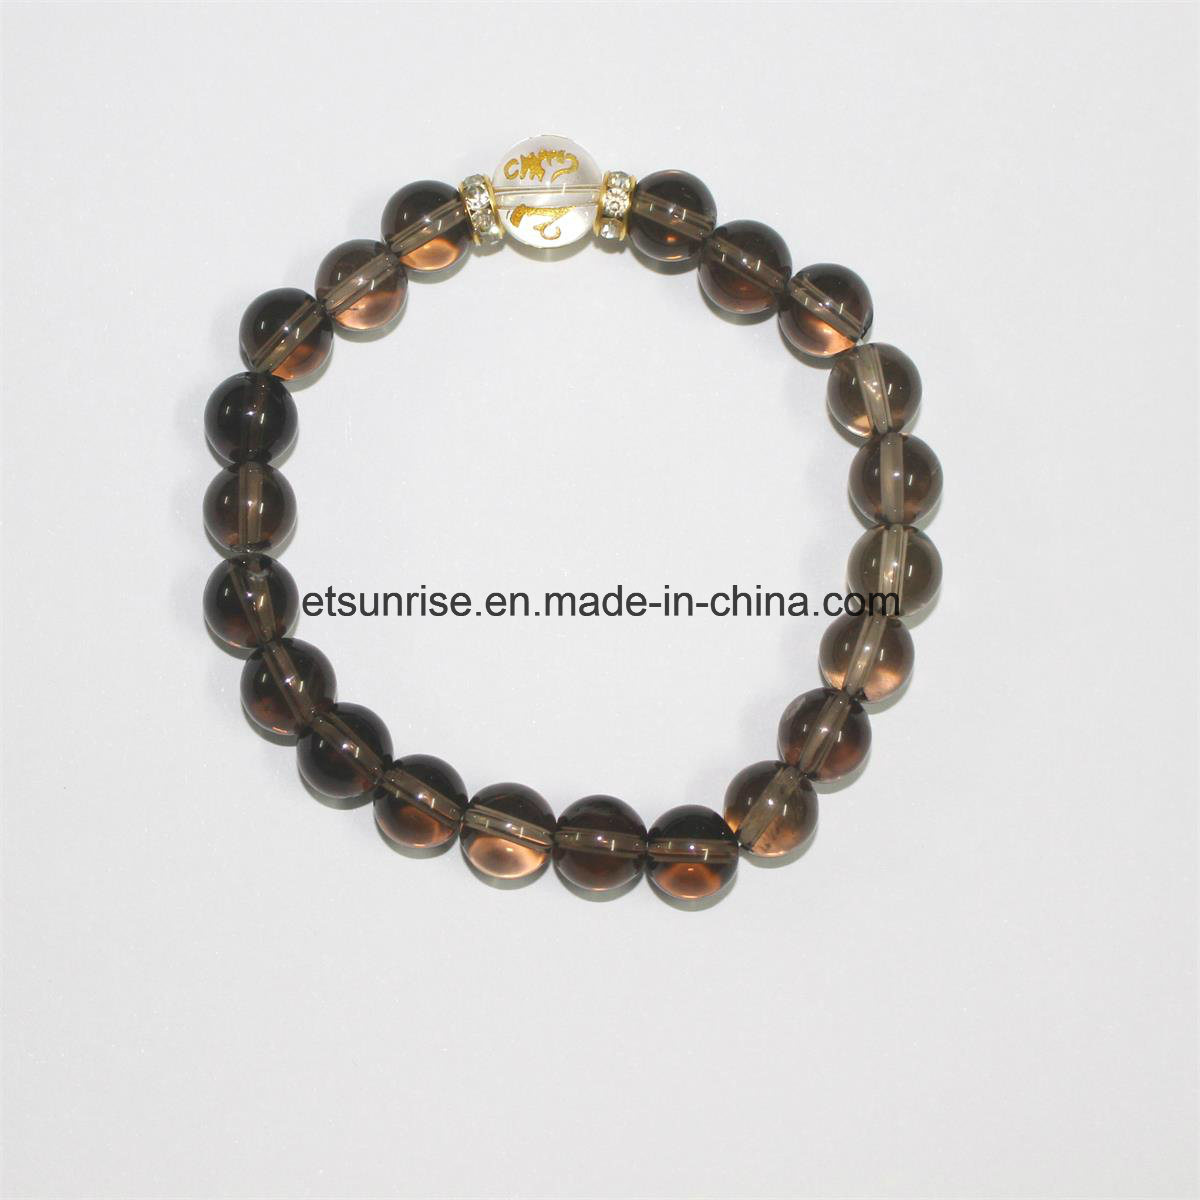 Fashion Natural Smoky Quartz Crystal Bracelet Bangles Jewelry